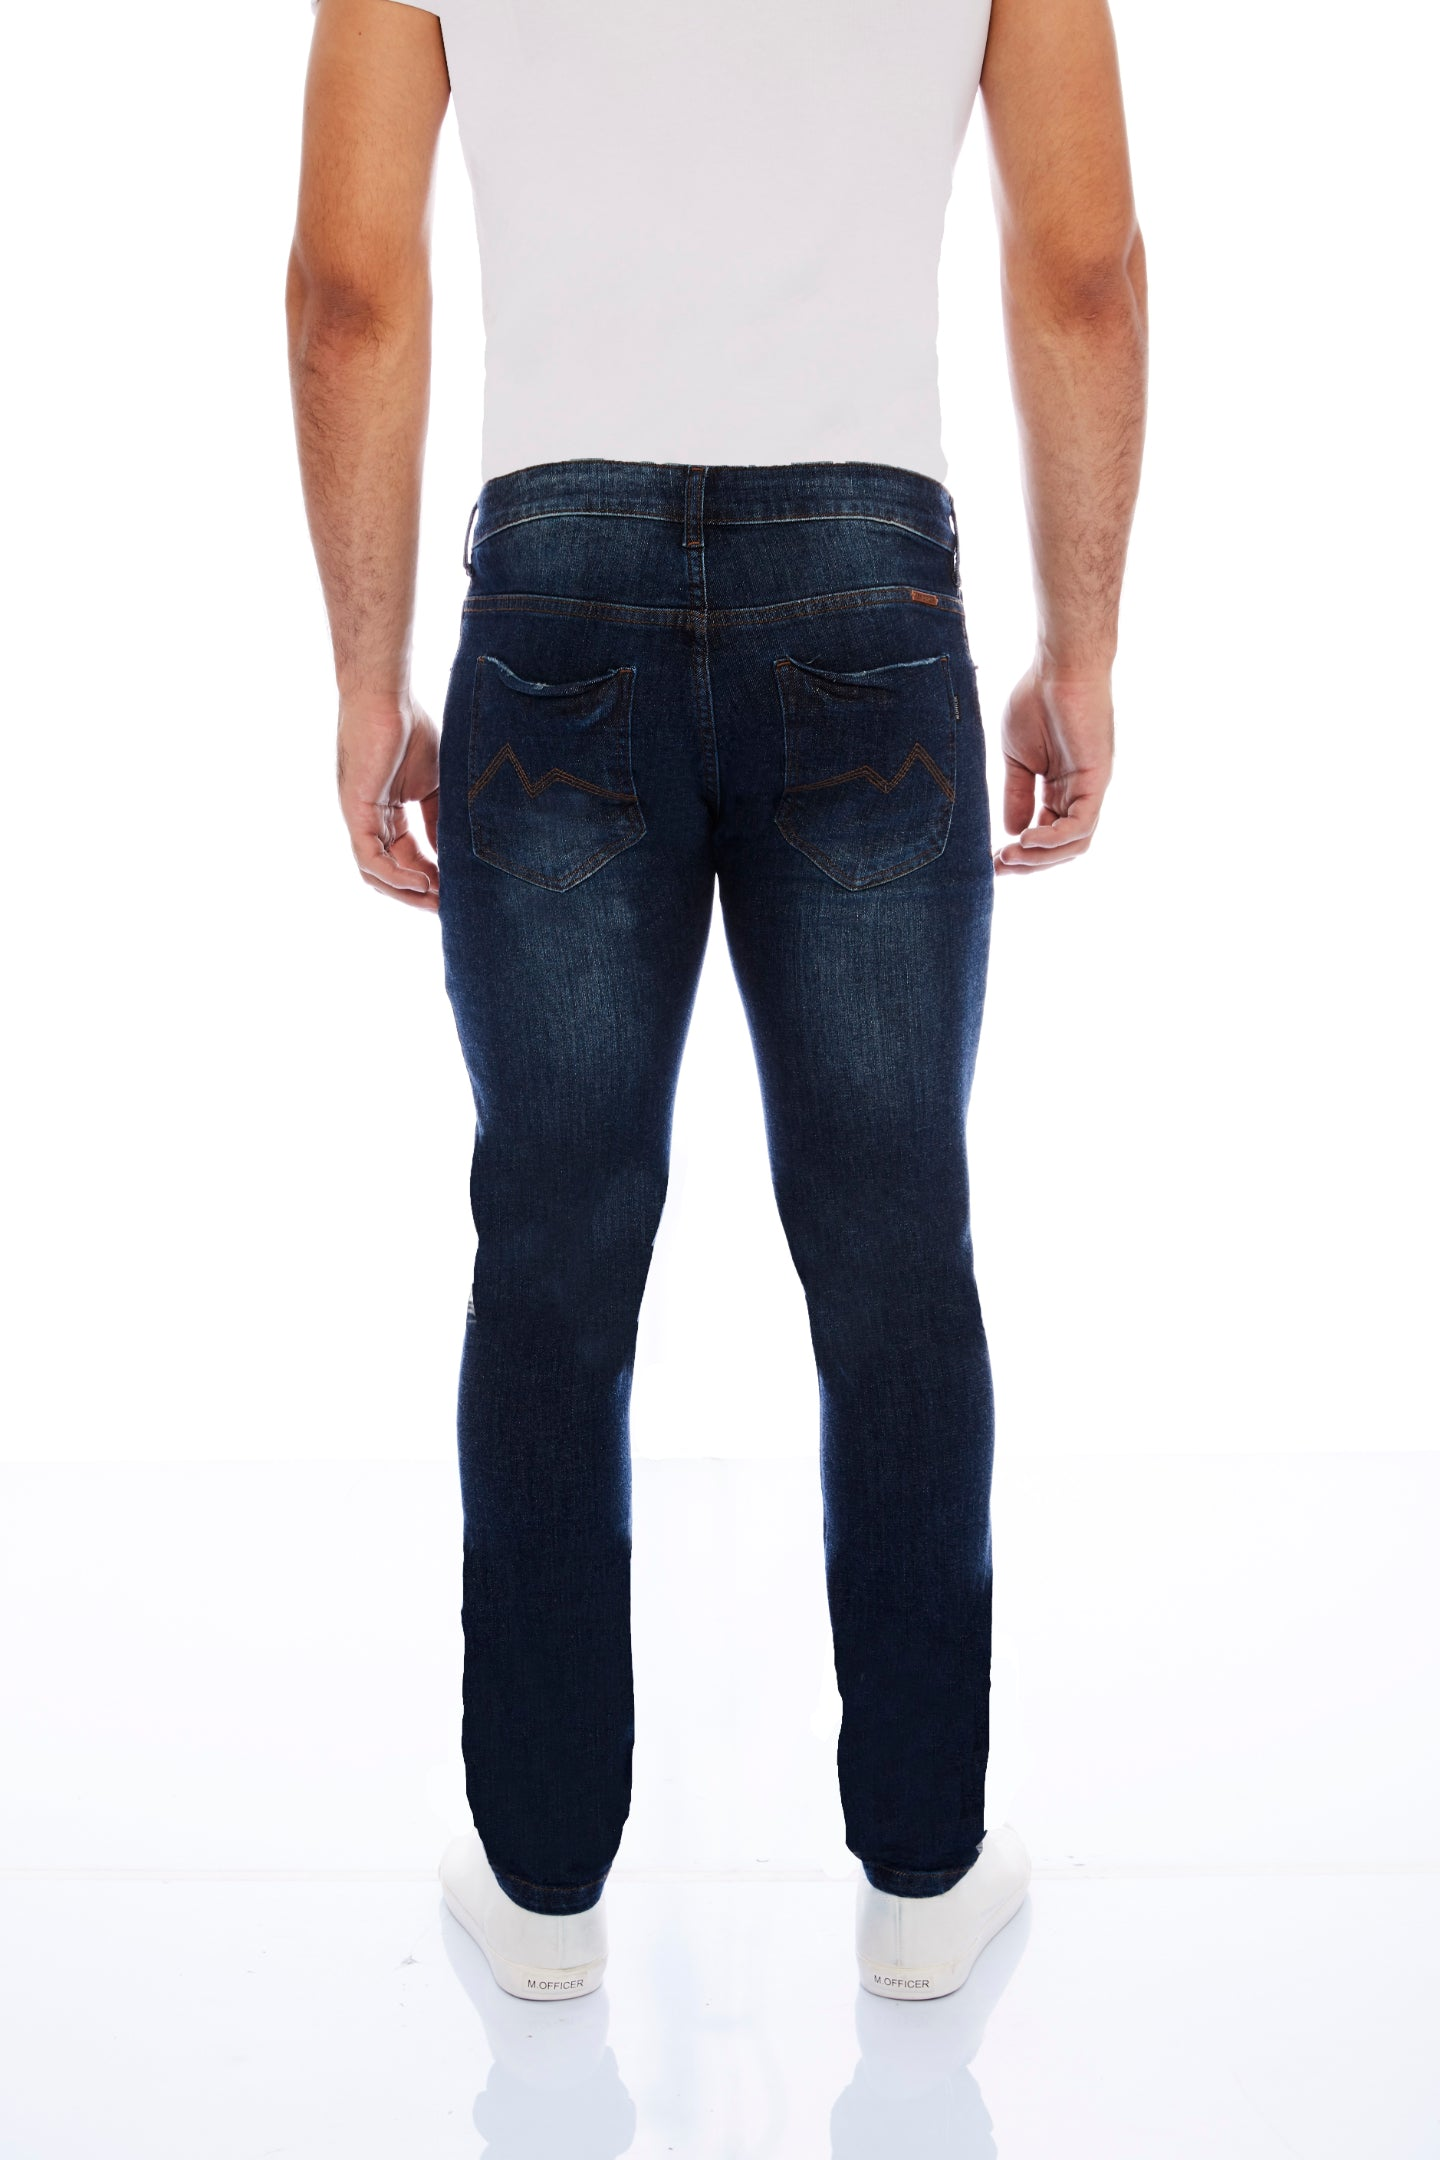 CALÇA JEANS PREMIUM COOL FIT DARK BLUE